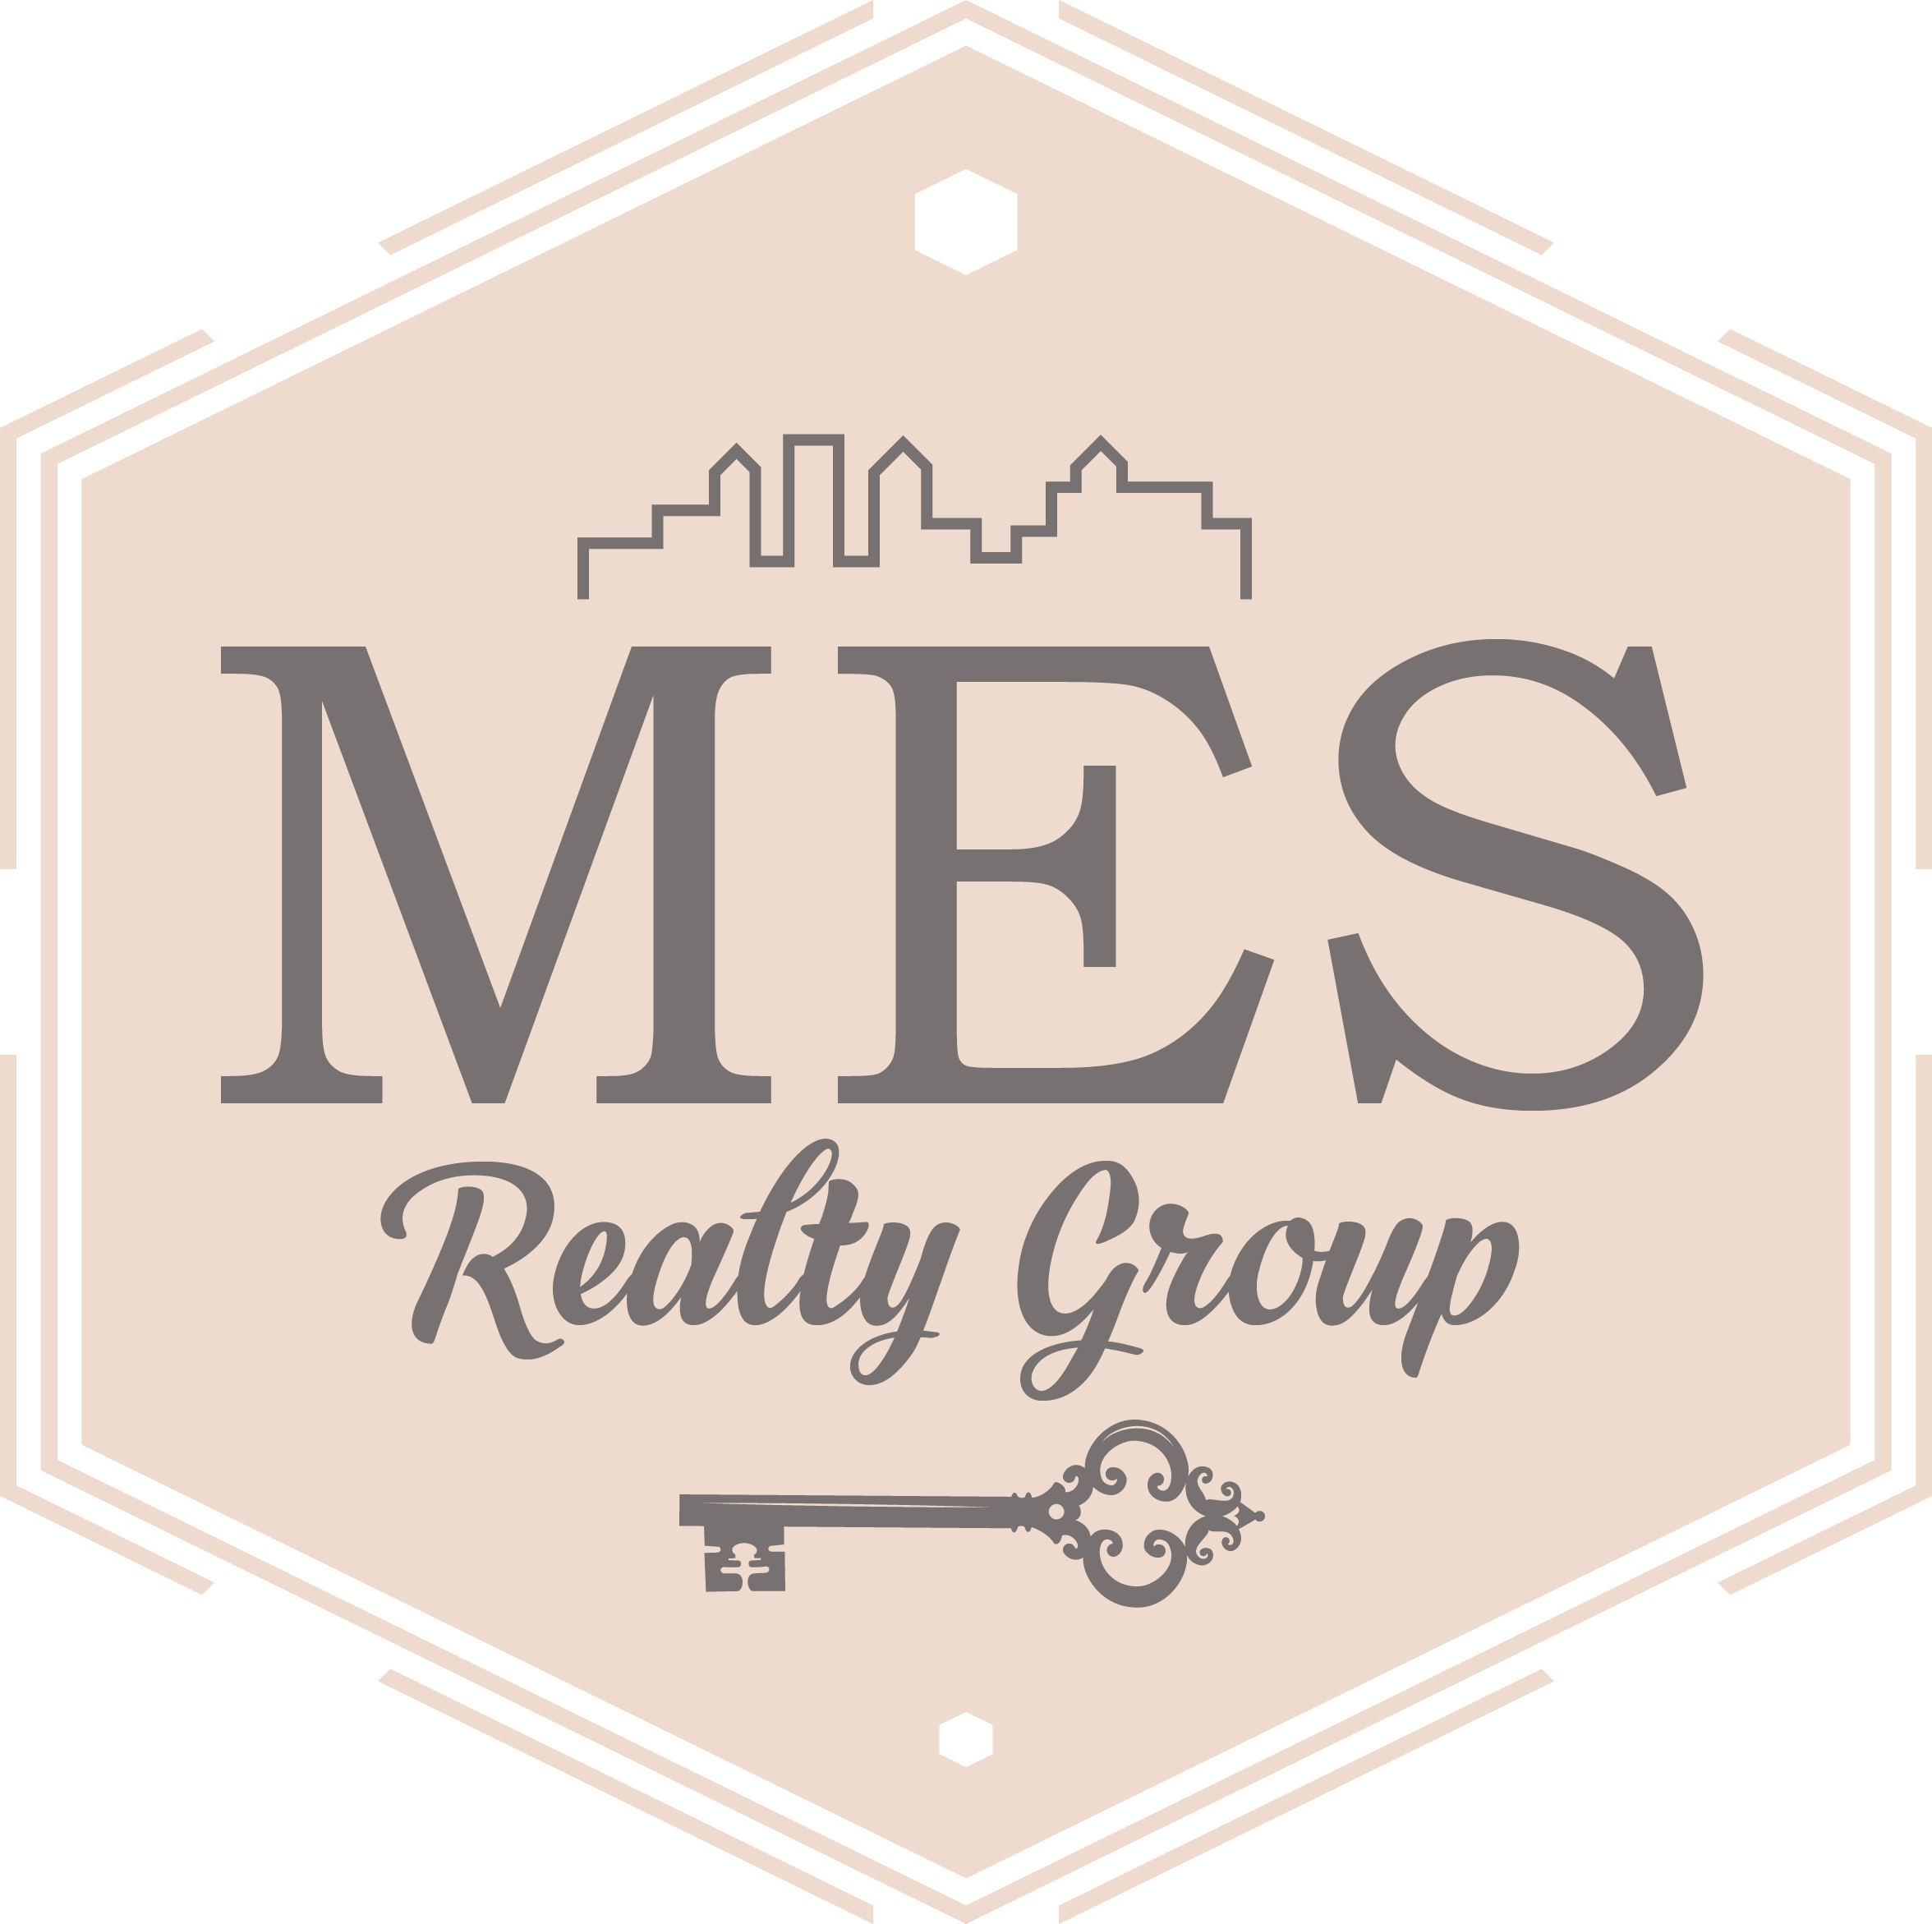 Mes Realty Group LLC